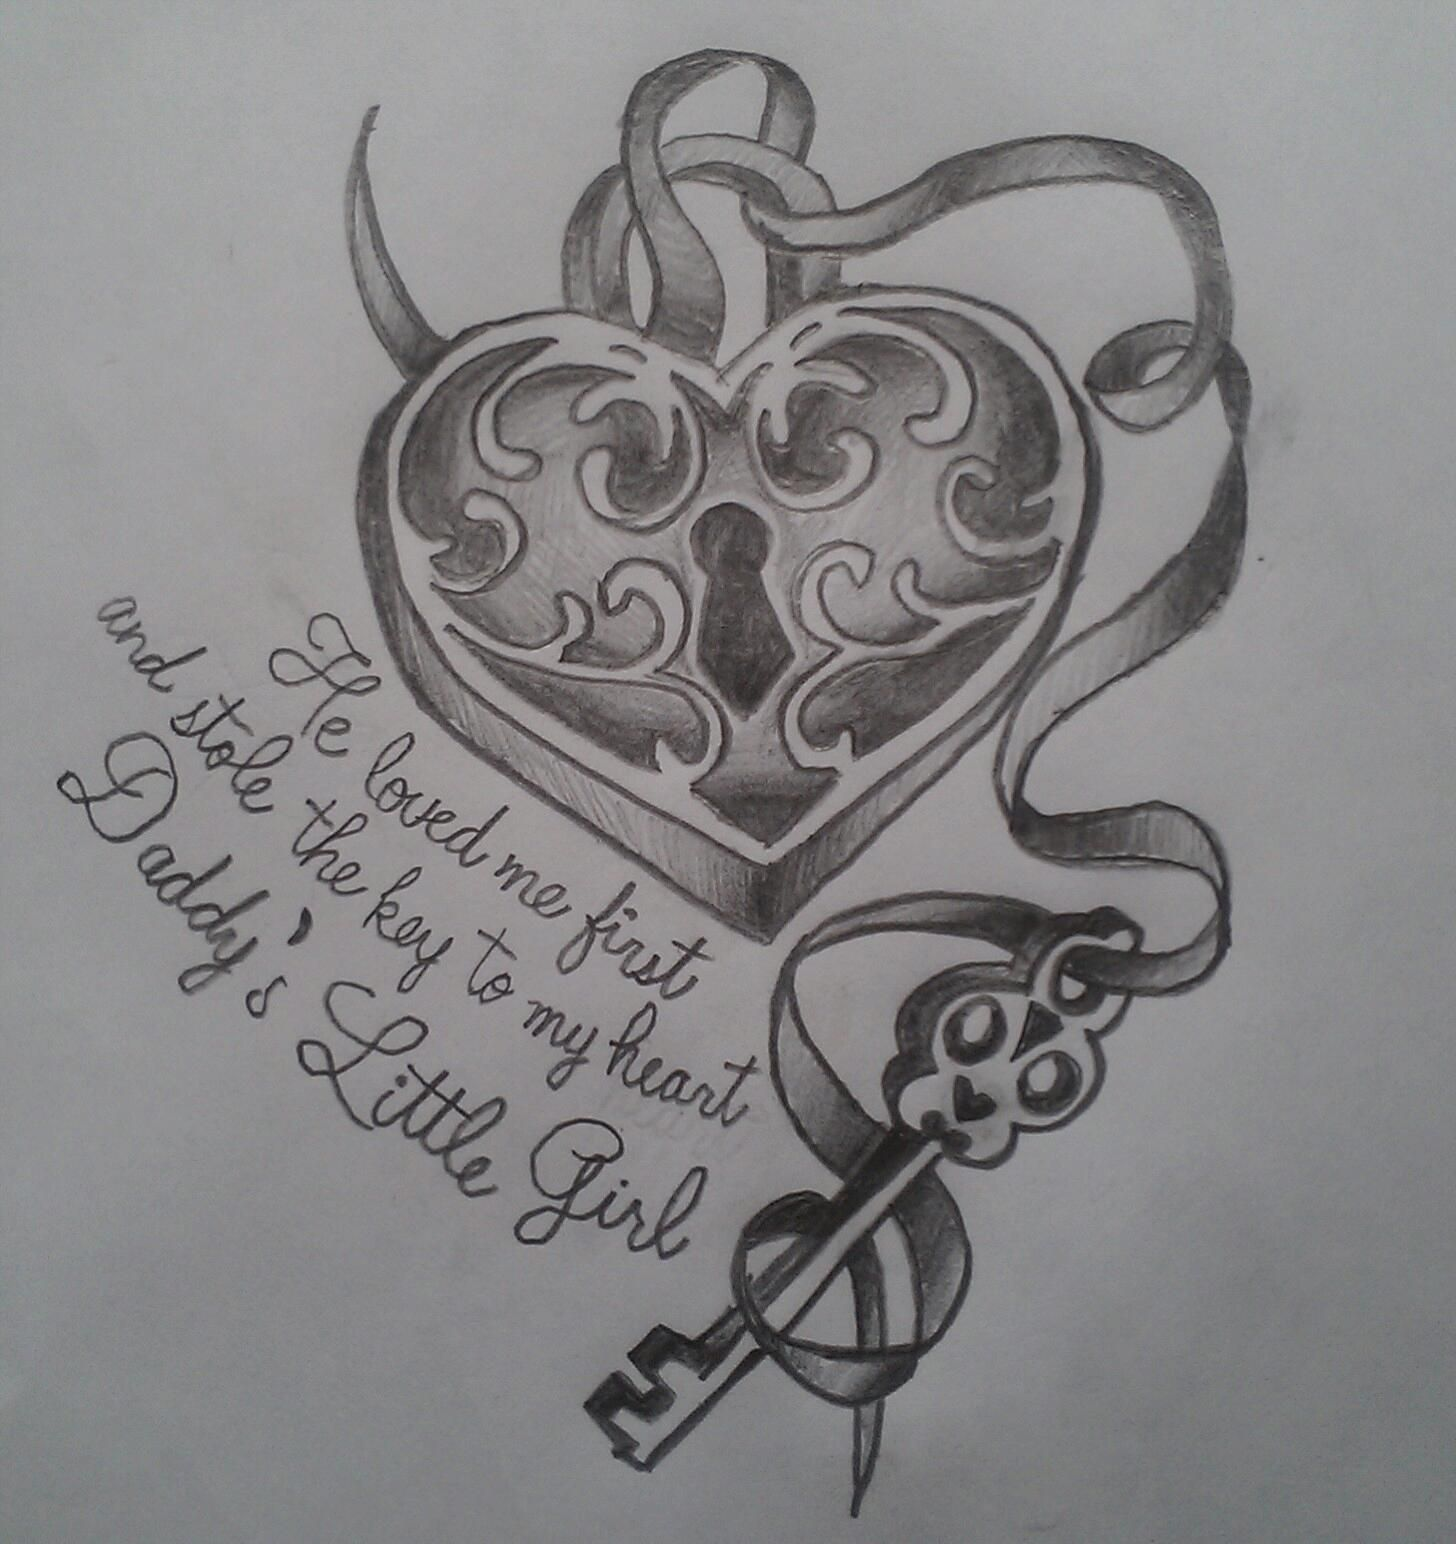 d505554f9 He loved me first and stole the key to my heart...daddys little girl...my  own drawing! Meghan Nellis